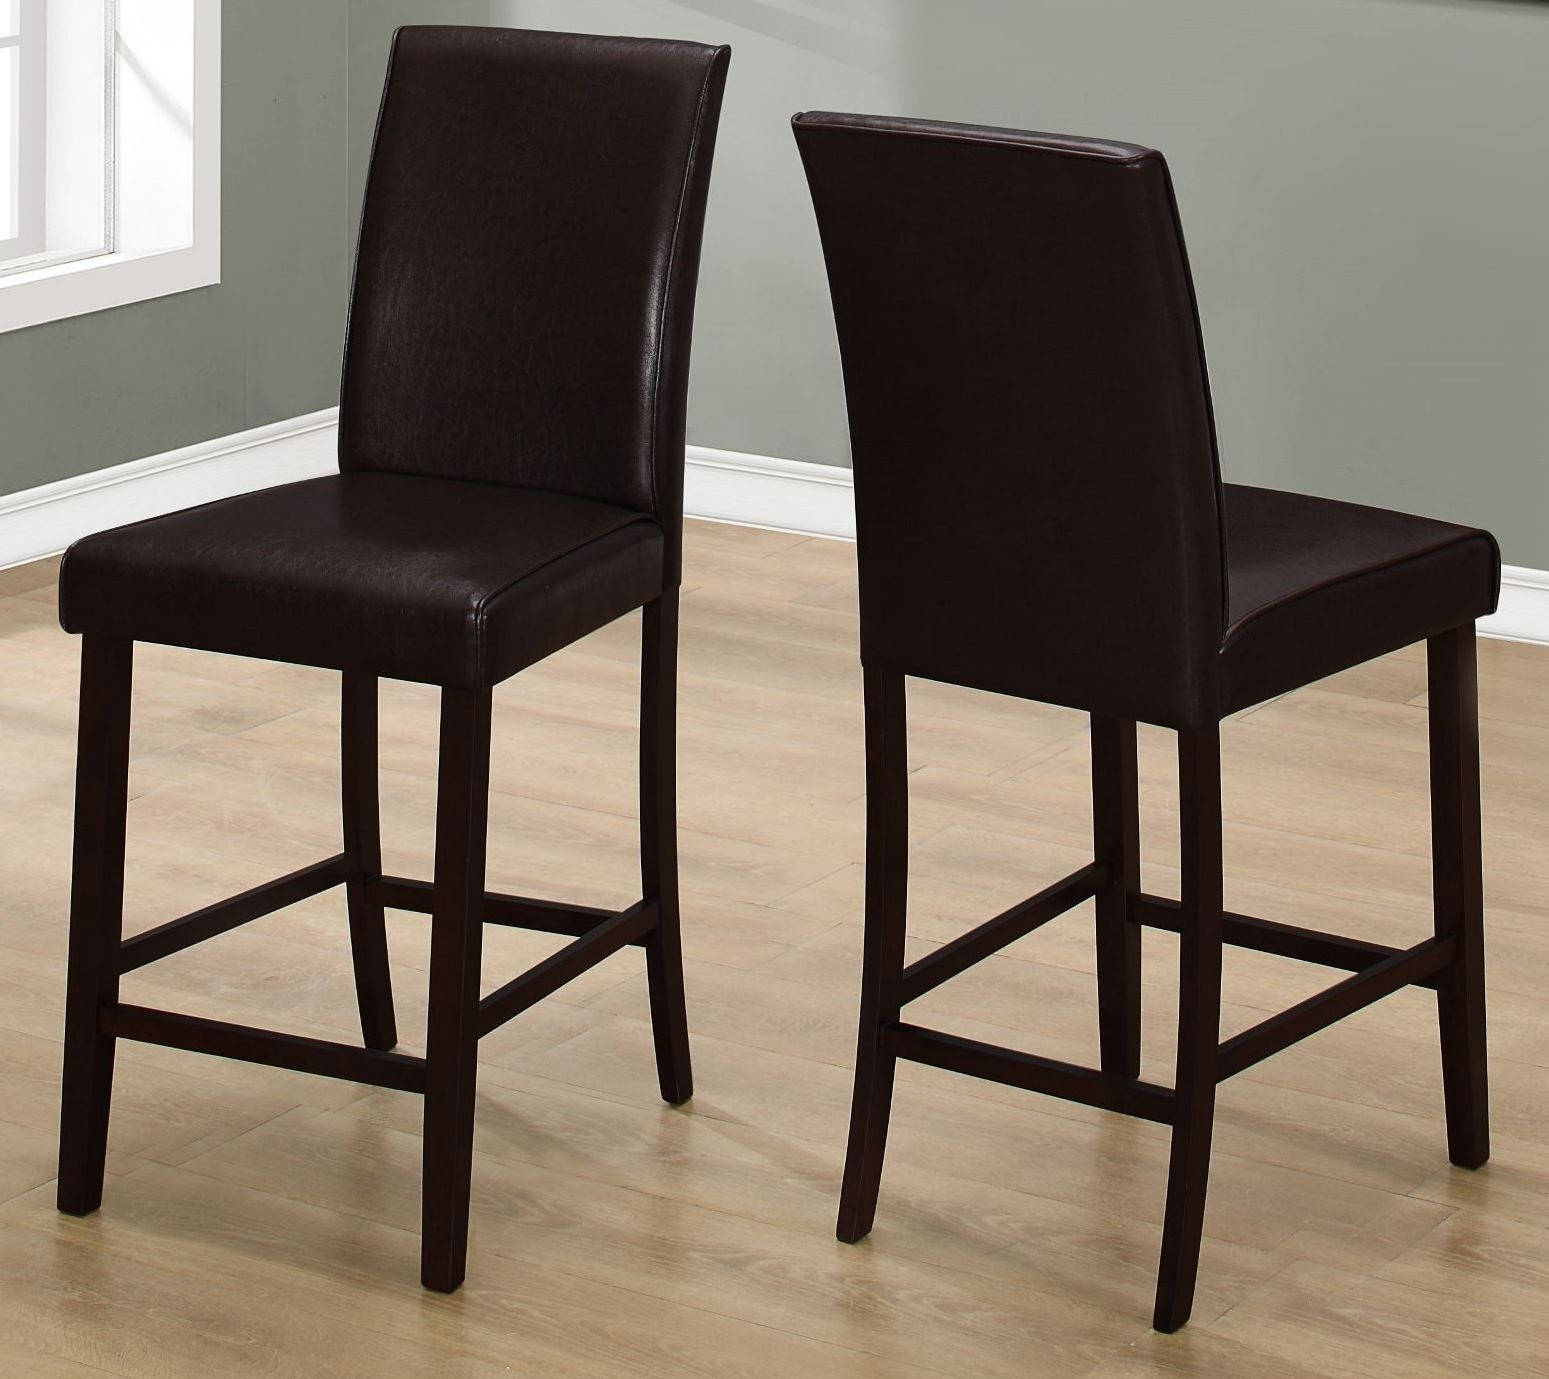 chocolate leather dining chairs chair sling fabric brown counter height set of 2 from